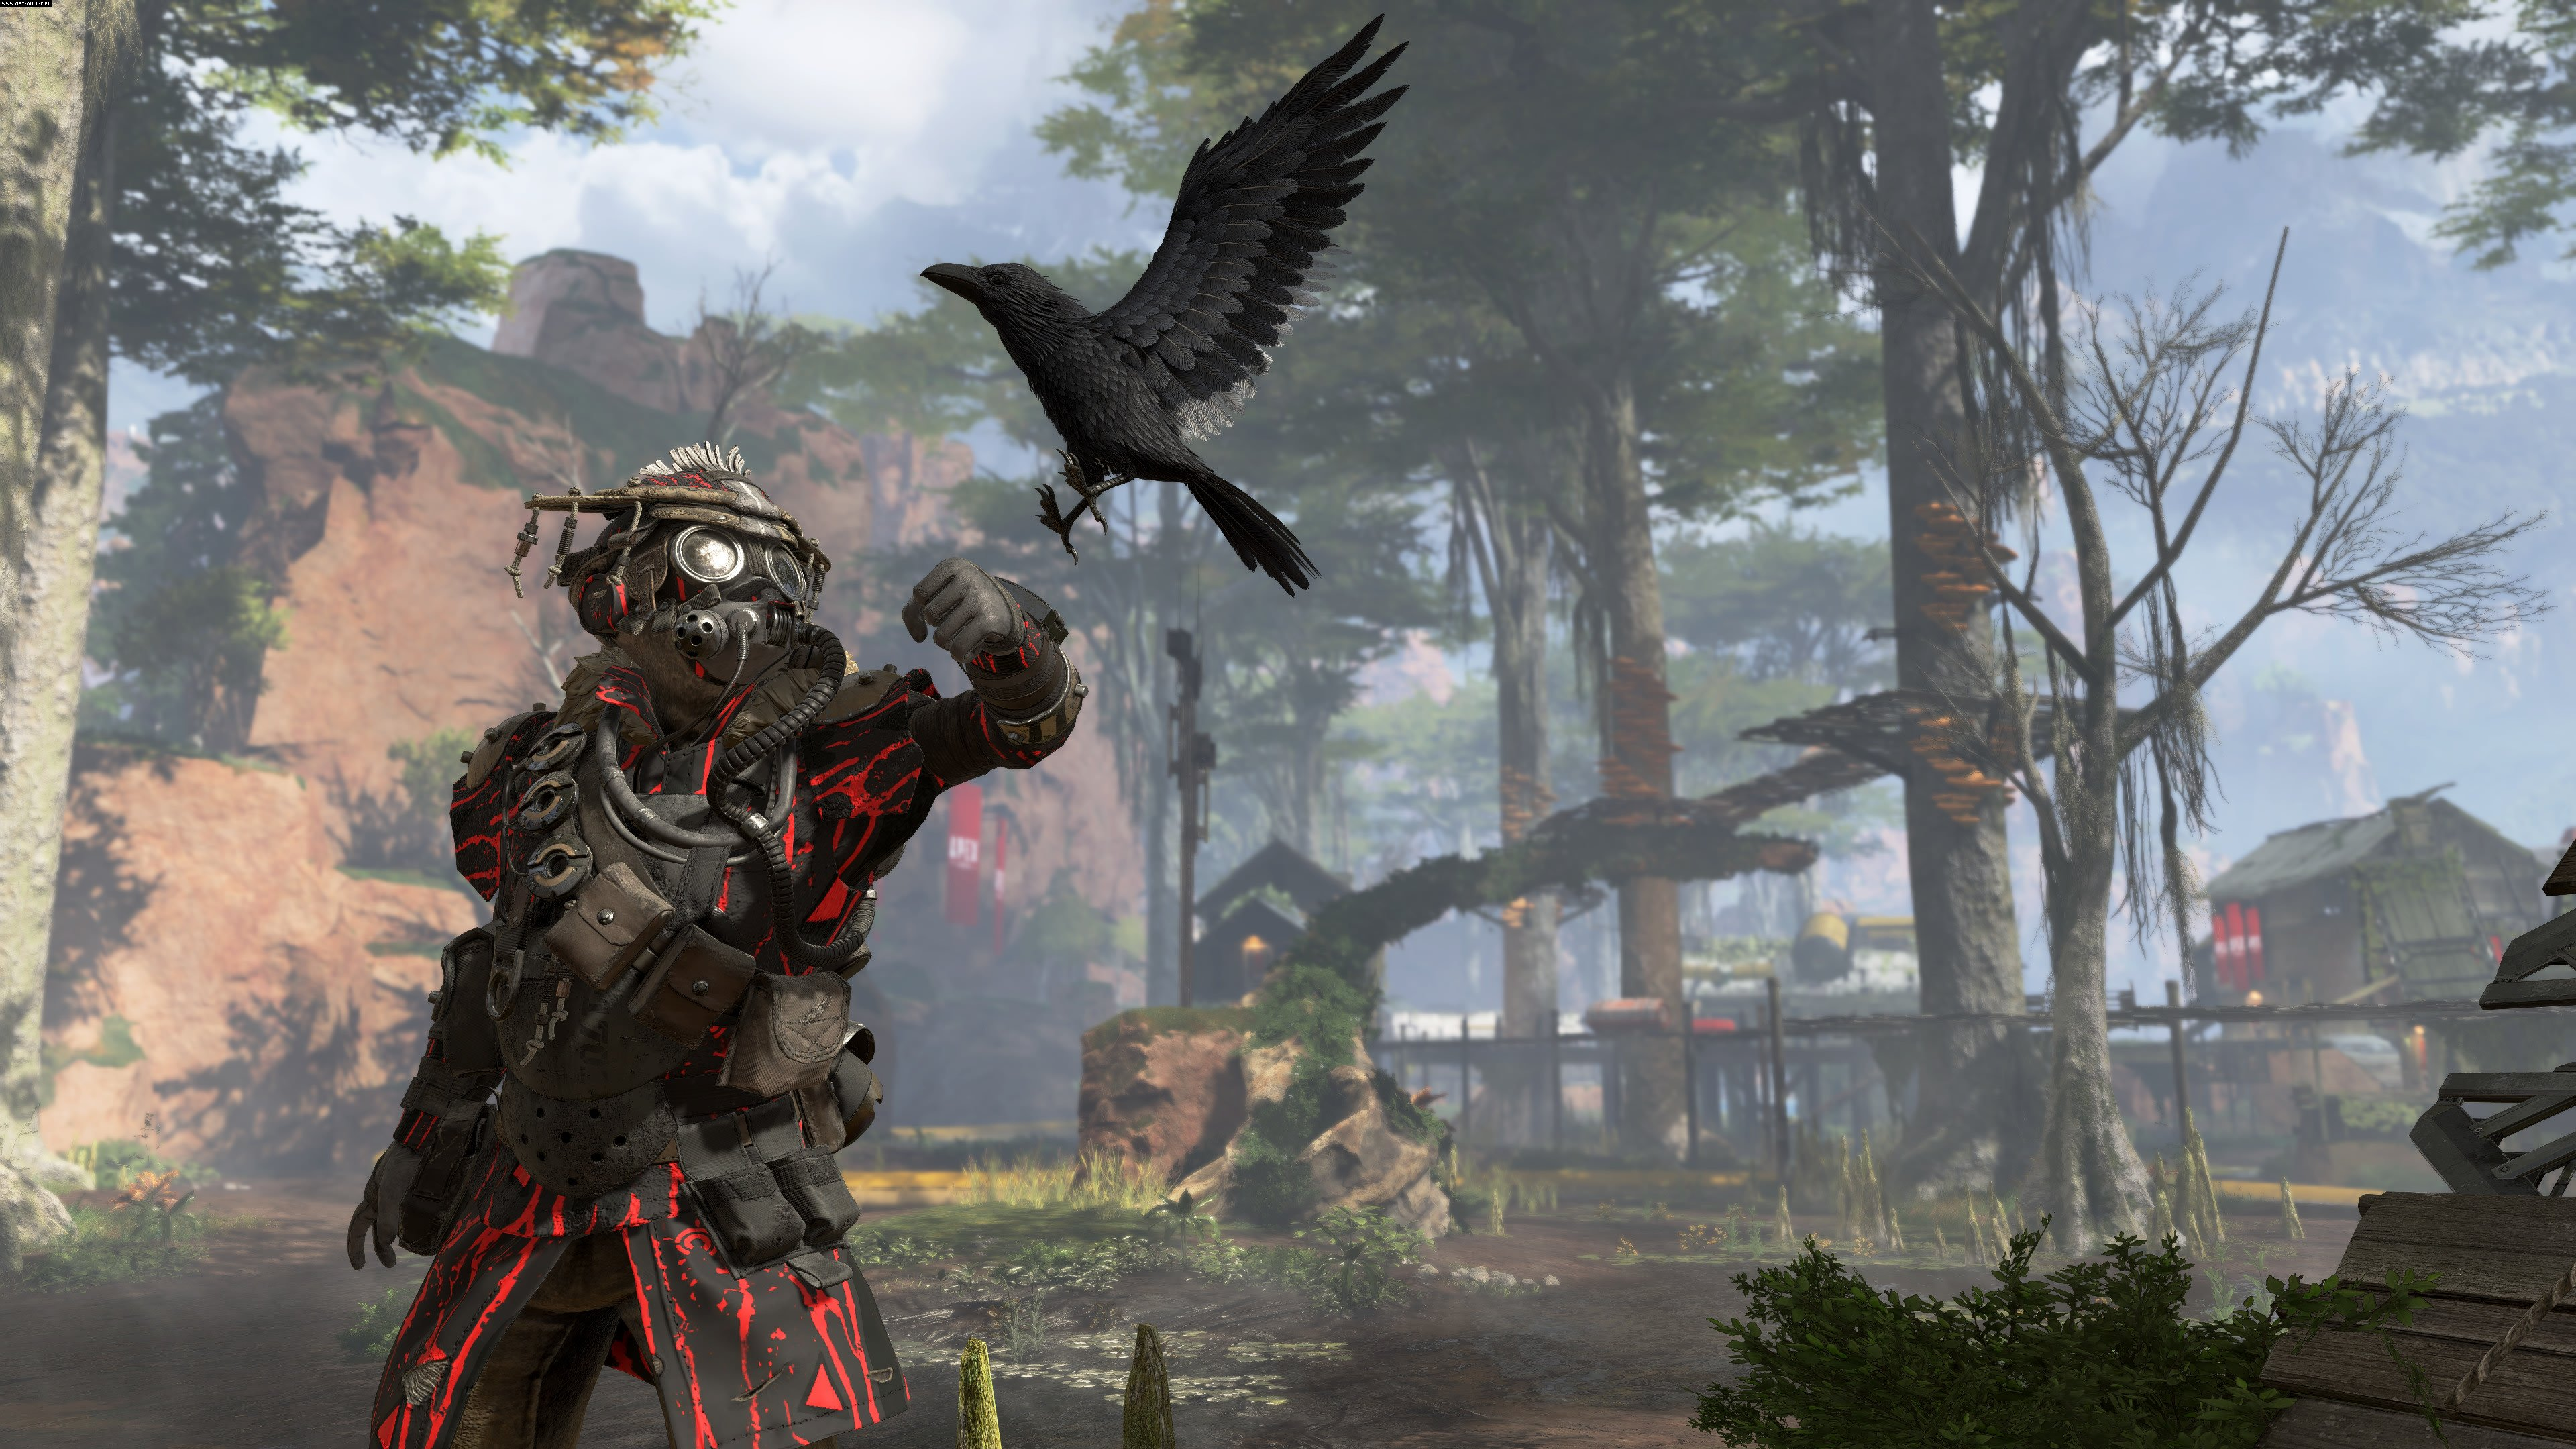 Apex Legends PC, PS4, XONE Gry Screen 5/13, Respawn Entertainment, Electronic Arts Inc.